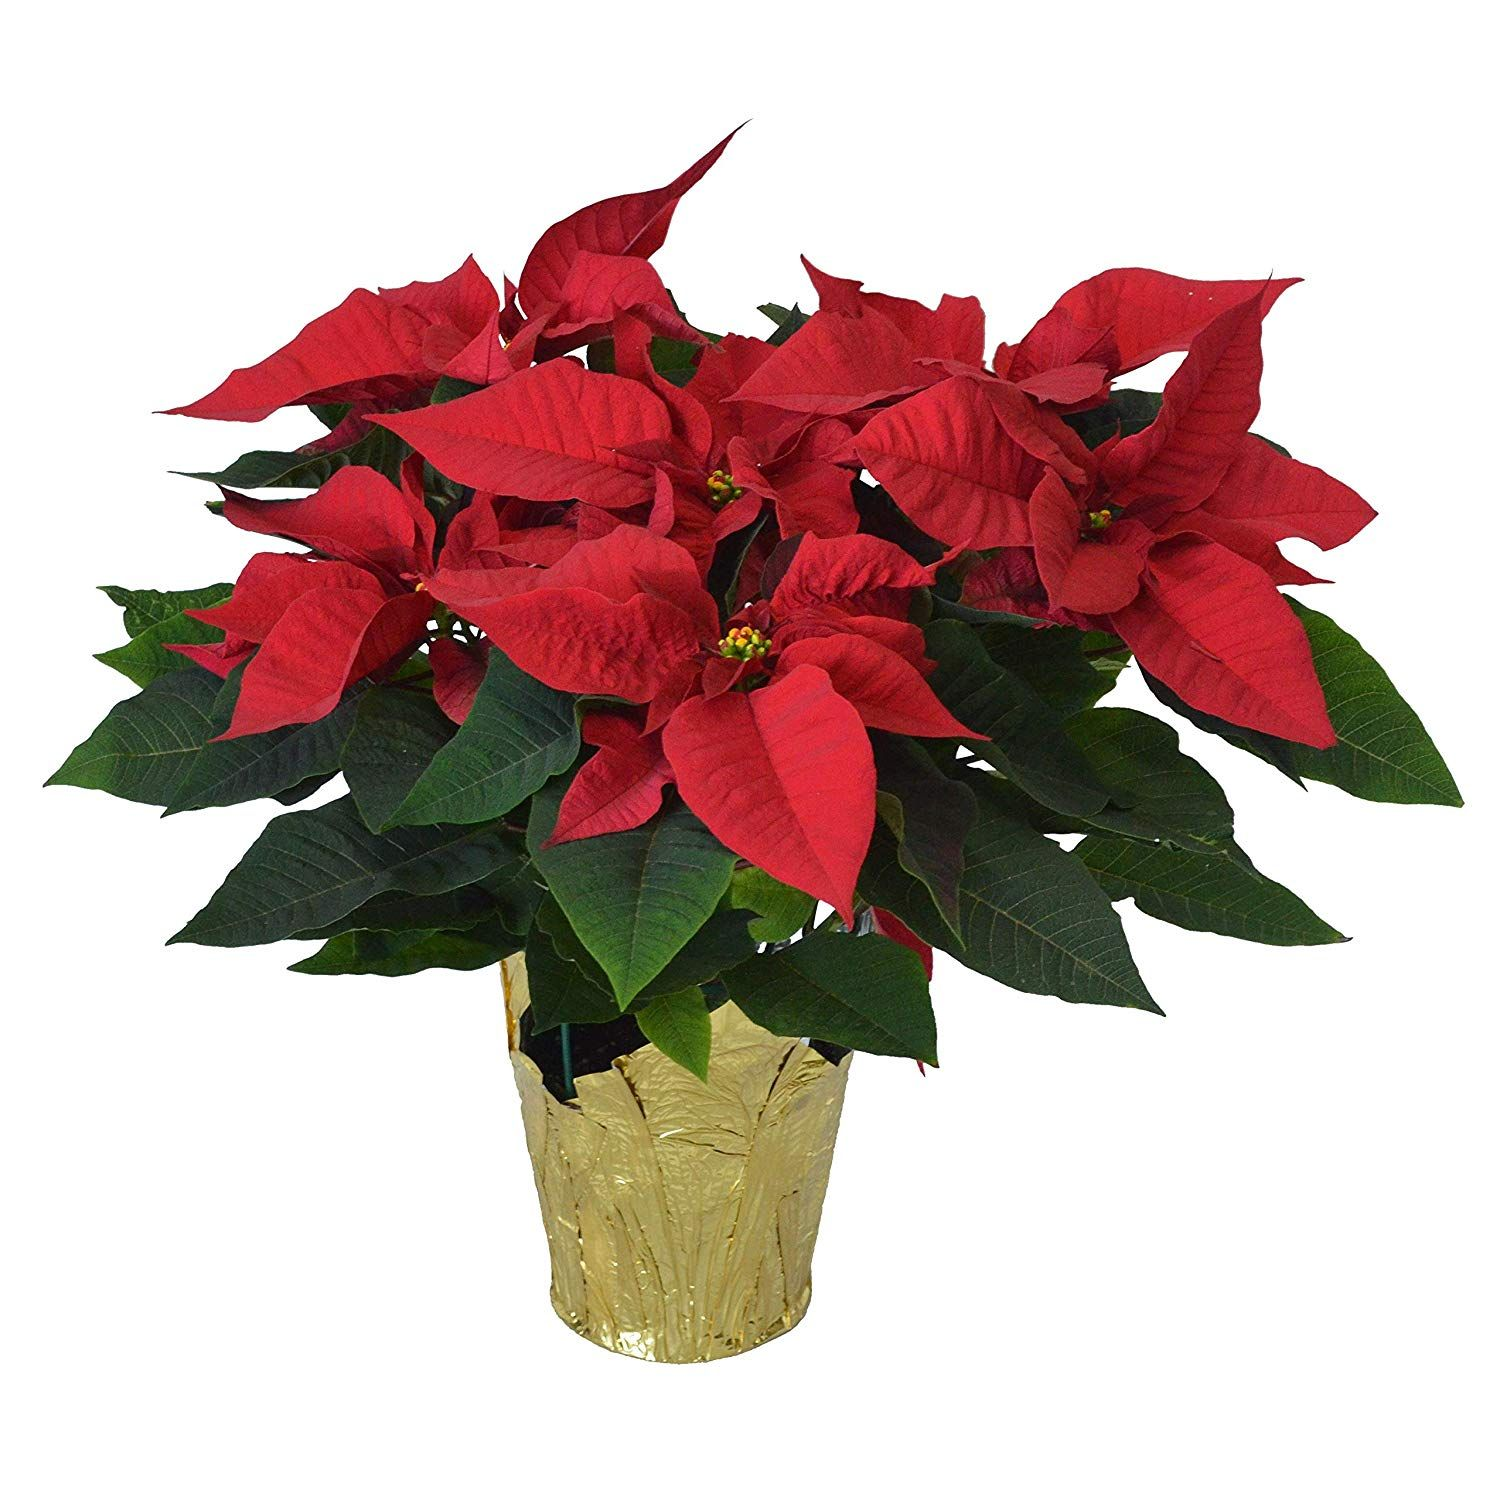 Are Poinsettia Plants Poisonous Learn The Answer And Other Care Tips For Poinsettias At Https Www Houseplant411 Co Poinsettia Plant Plants Christmas Plants